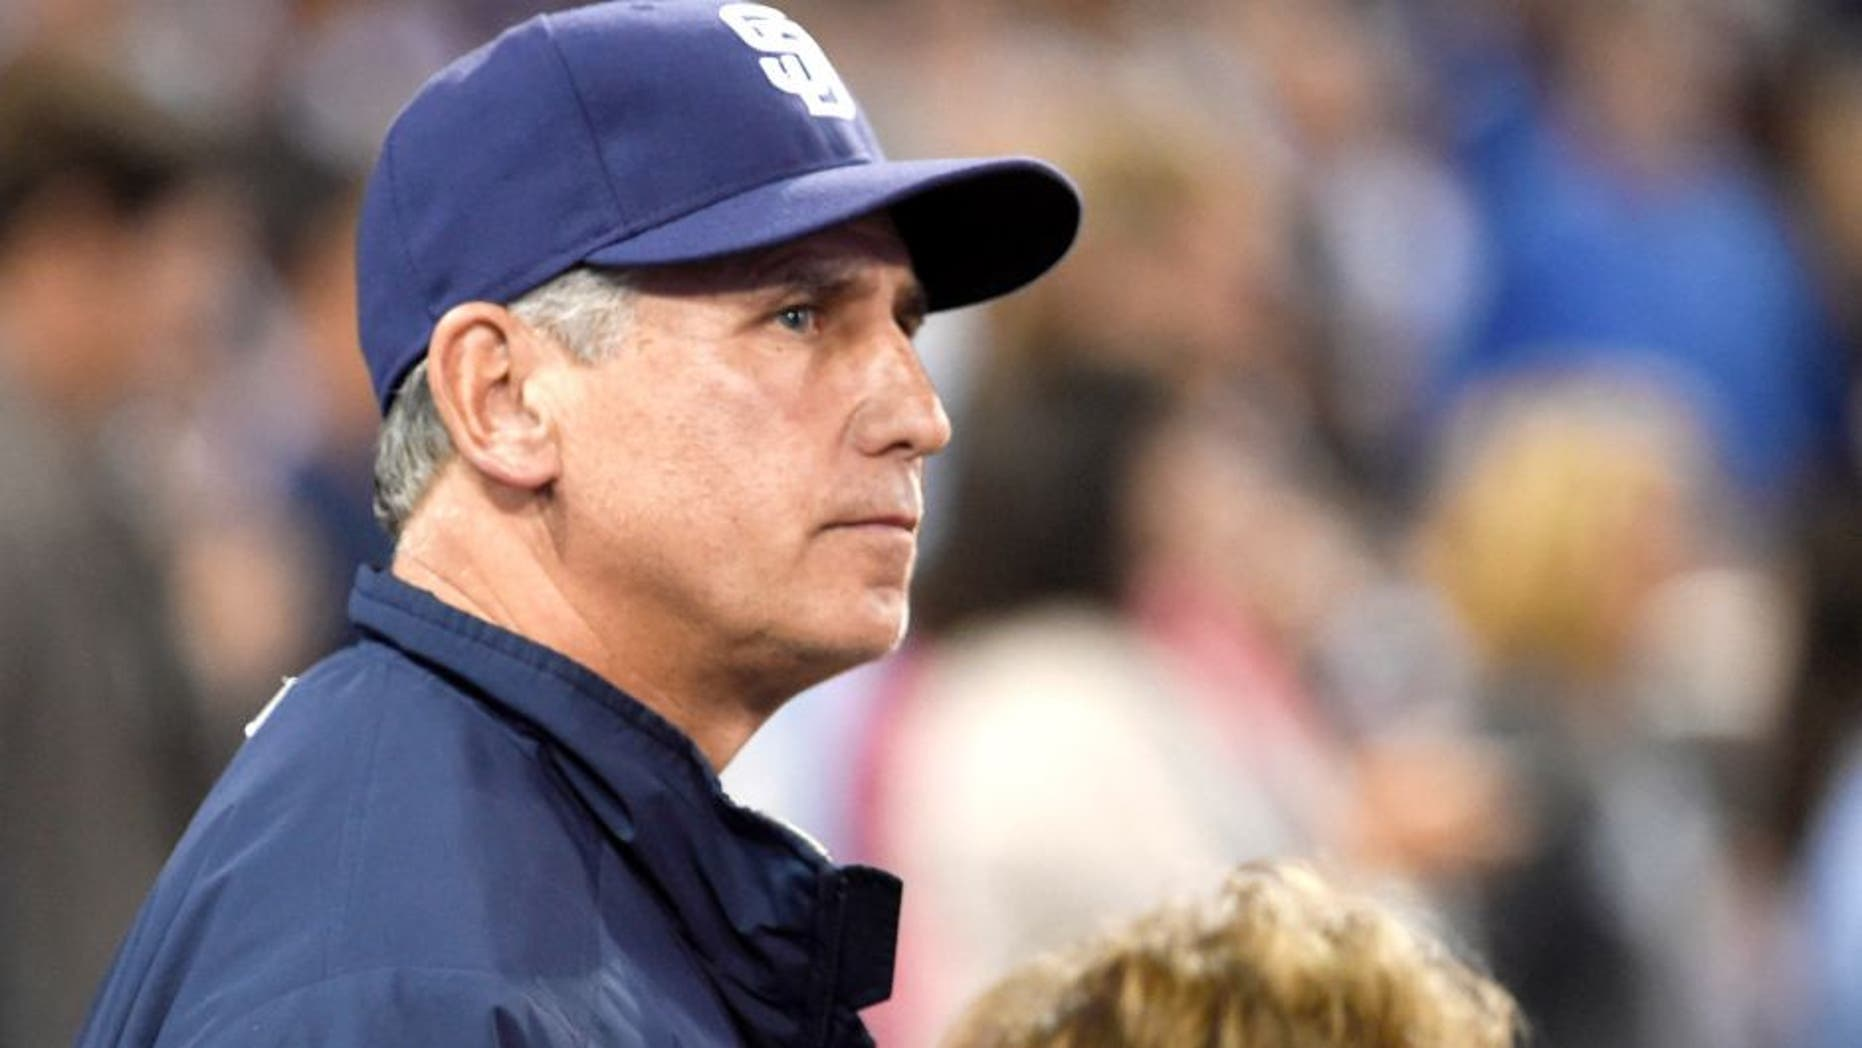 SAN DIEGO, CA - JUNE 13: Manager Bud Black #20 of the San Diego Padres looks on during a baseball game against the Los Angeles Dodgers at Petco Park on June 13, 2015 in San Diego, California. (Photo by Denis Poroy/Getty Images)